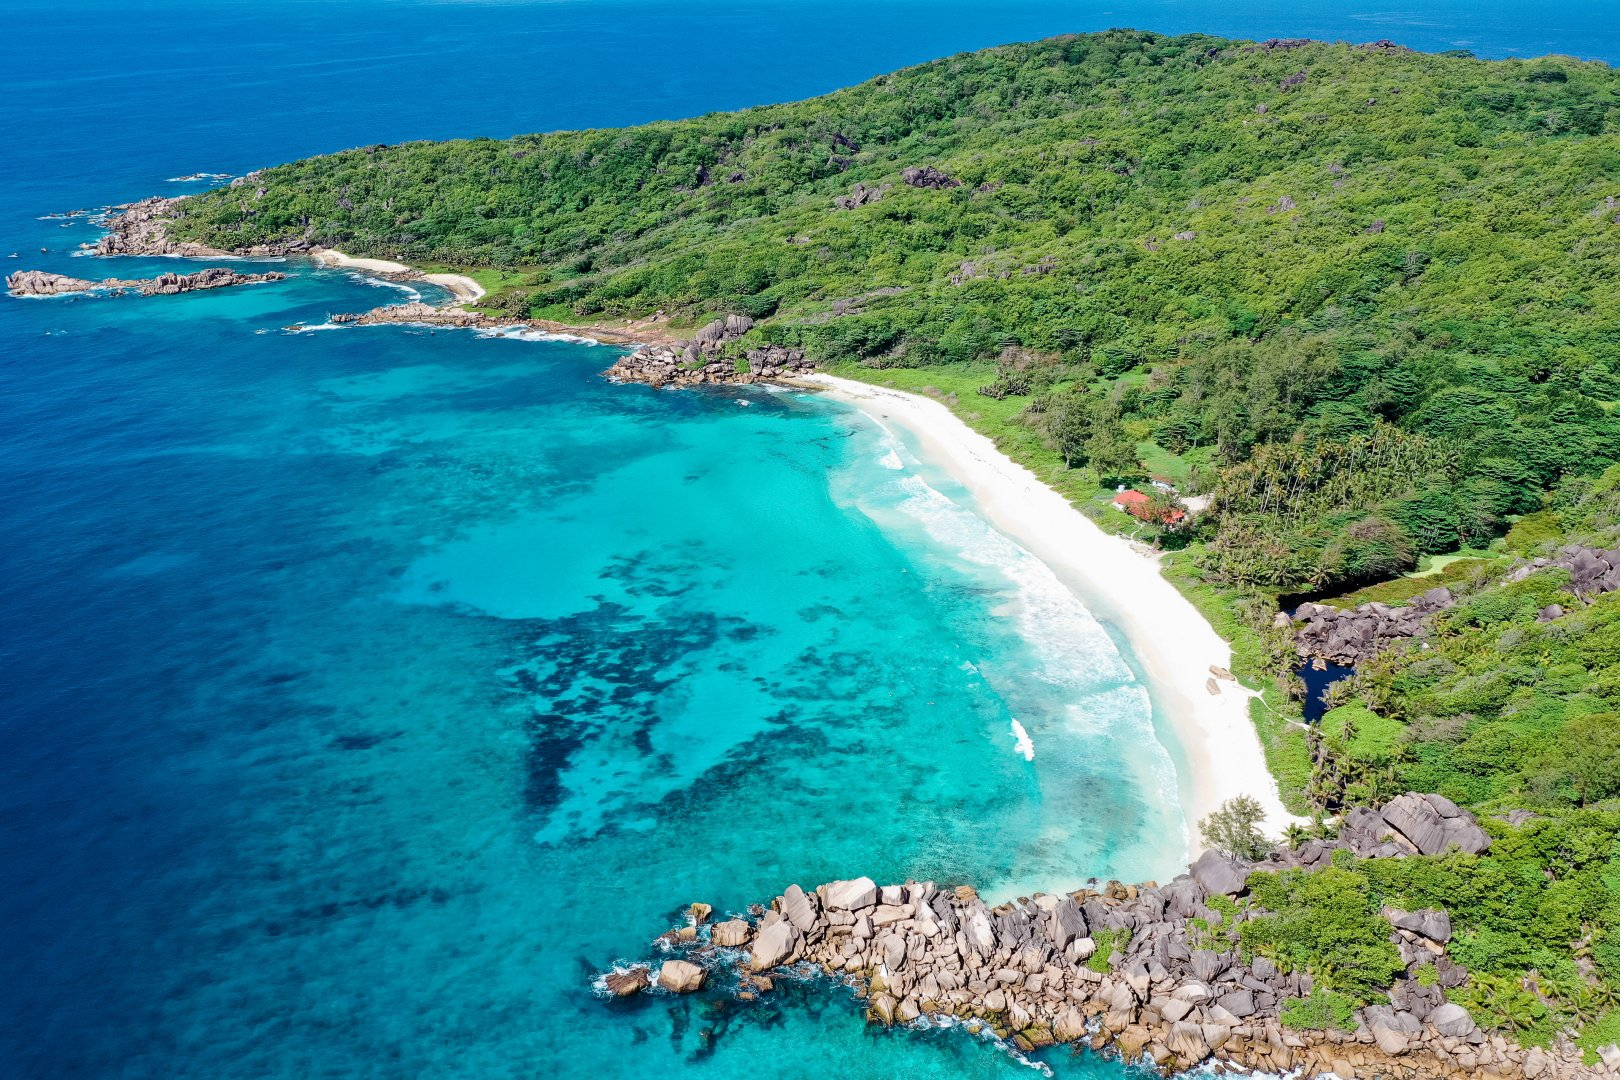 Body of water Coast Sea Coastal and oceanic landforms Bight Promontory Shore Bay Natural landscape Headland Ocean Beach Inlet Cove Cape Water resources Water Tropics Aerial photography Peninsula Vacation Tourism Klippe Photography Cliff Landscape National park Rock Lagoon Caribbean